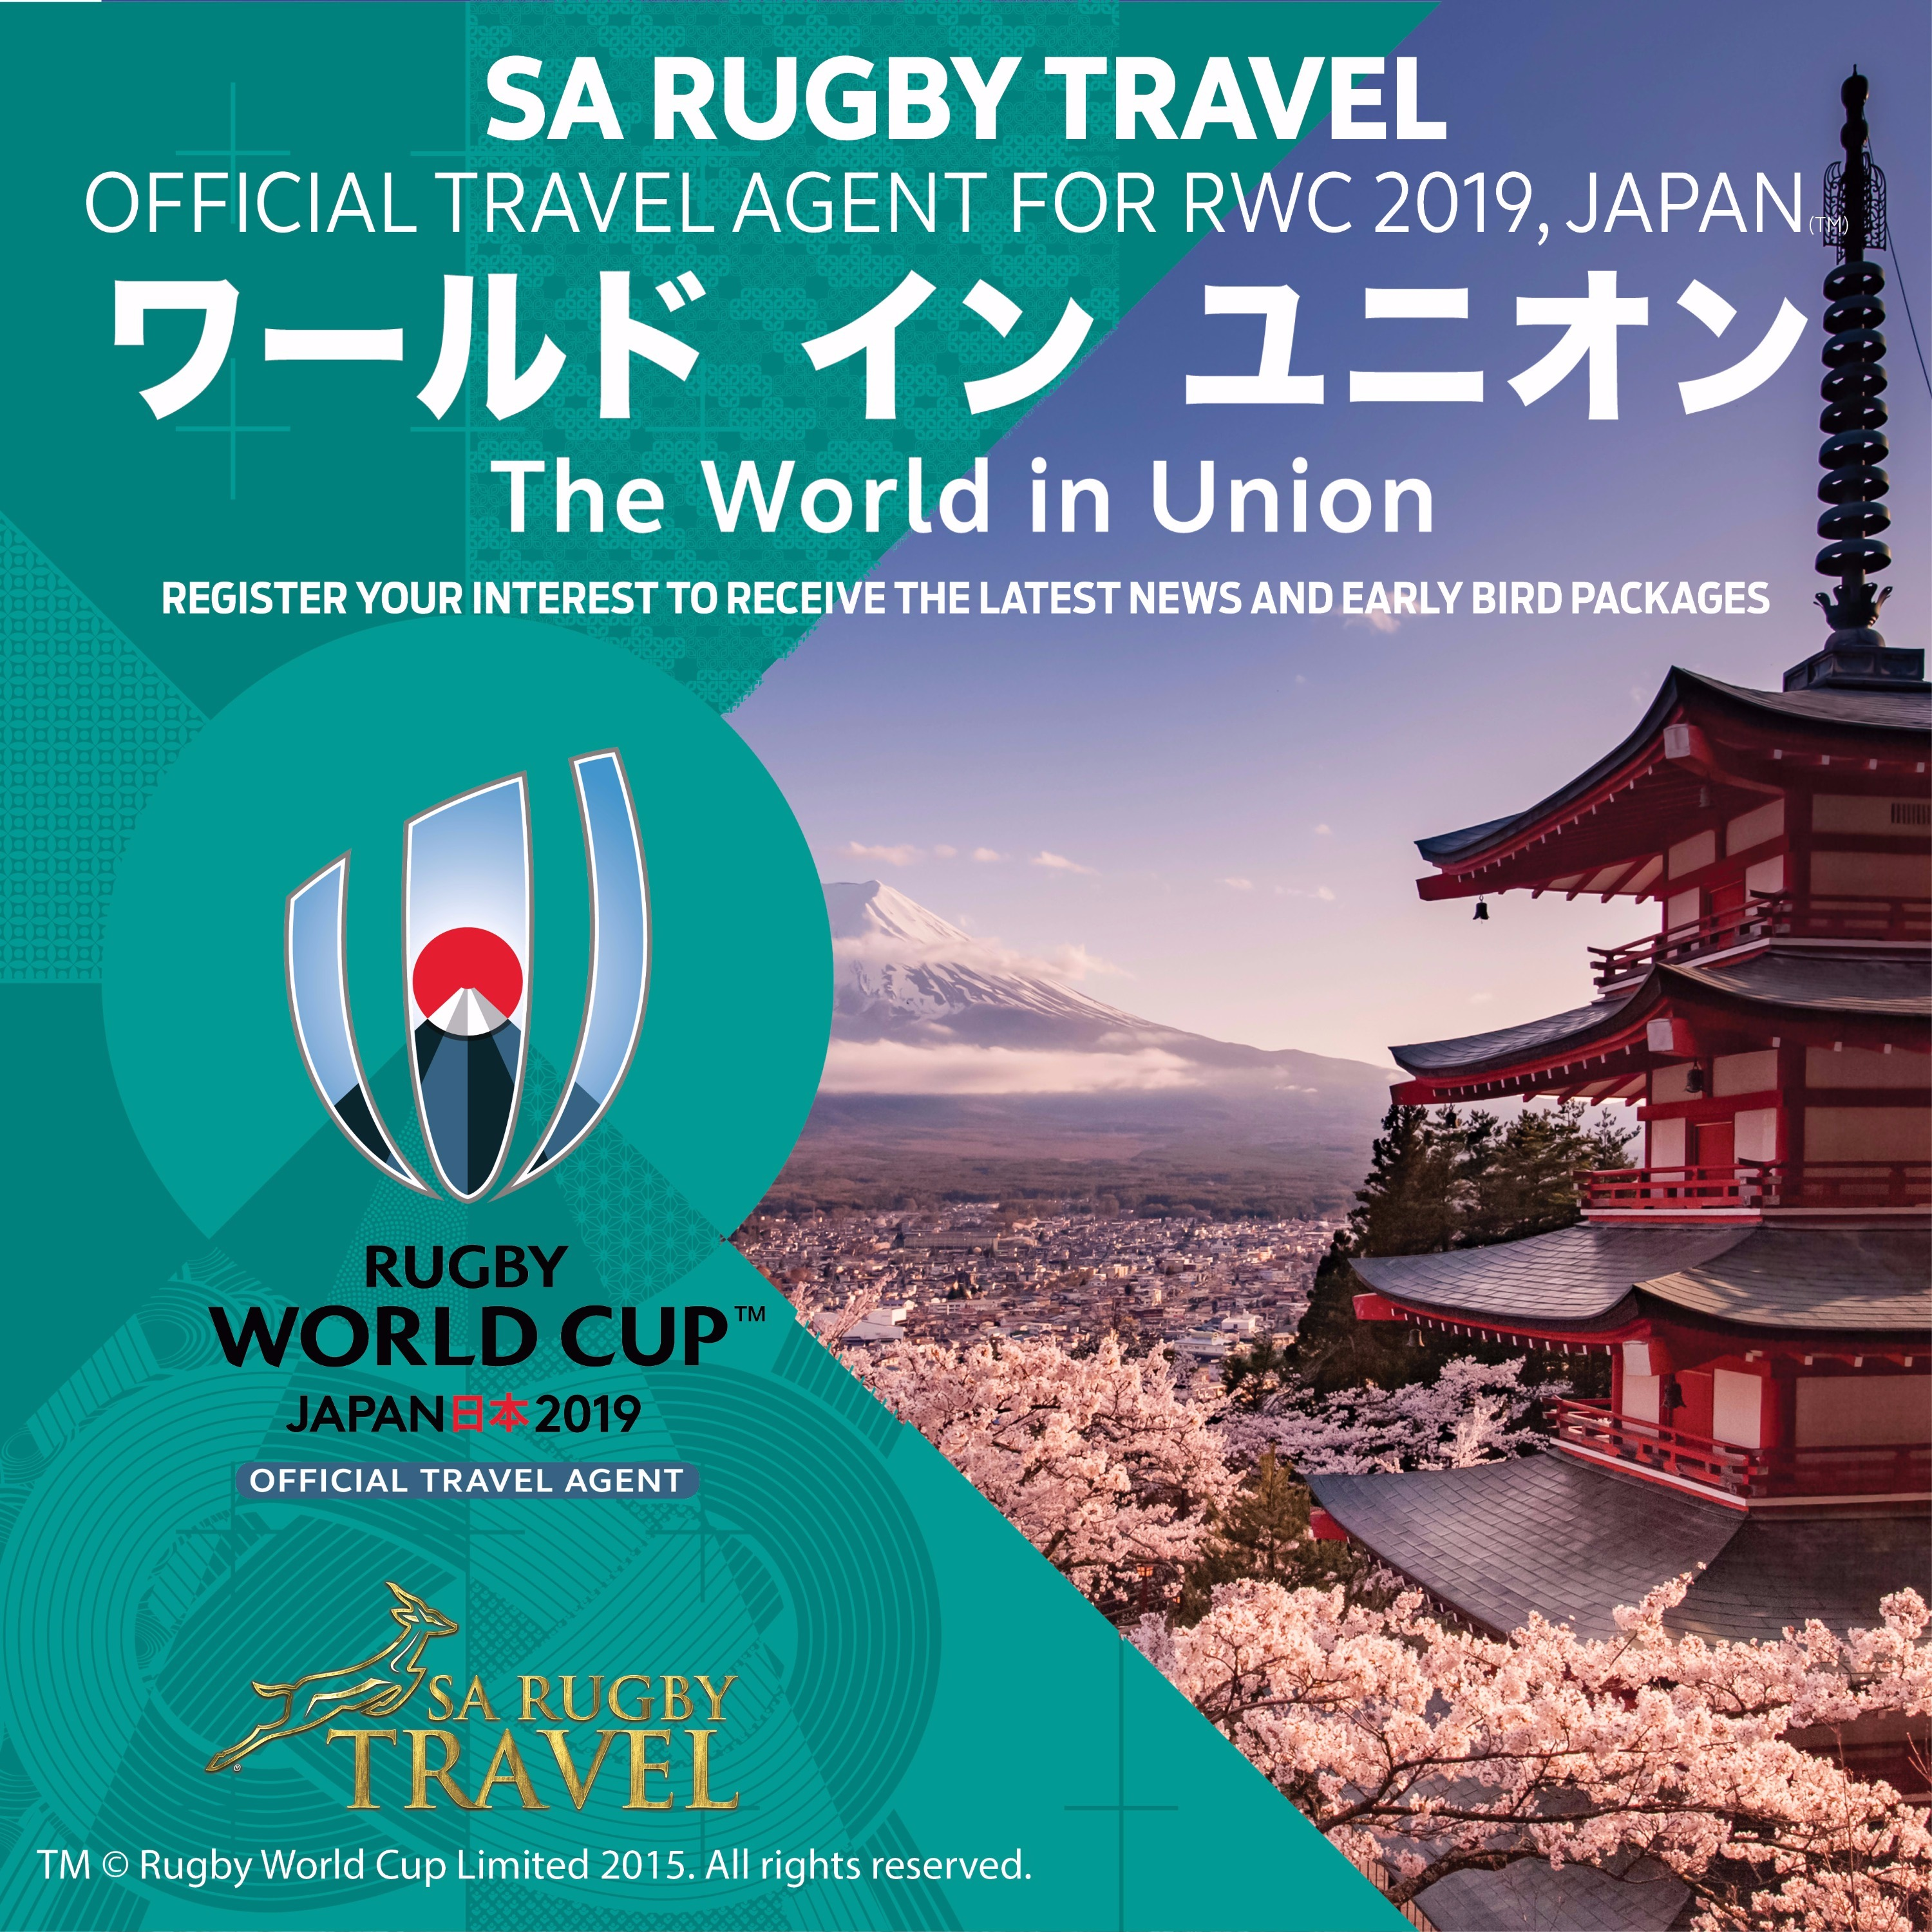 SA Rugby Travel - Official Travel Agent